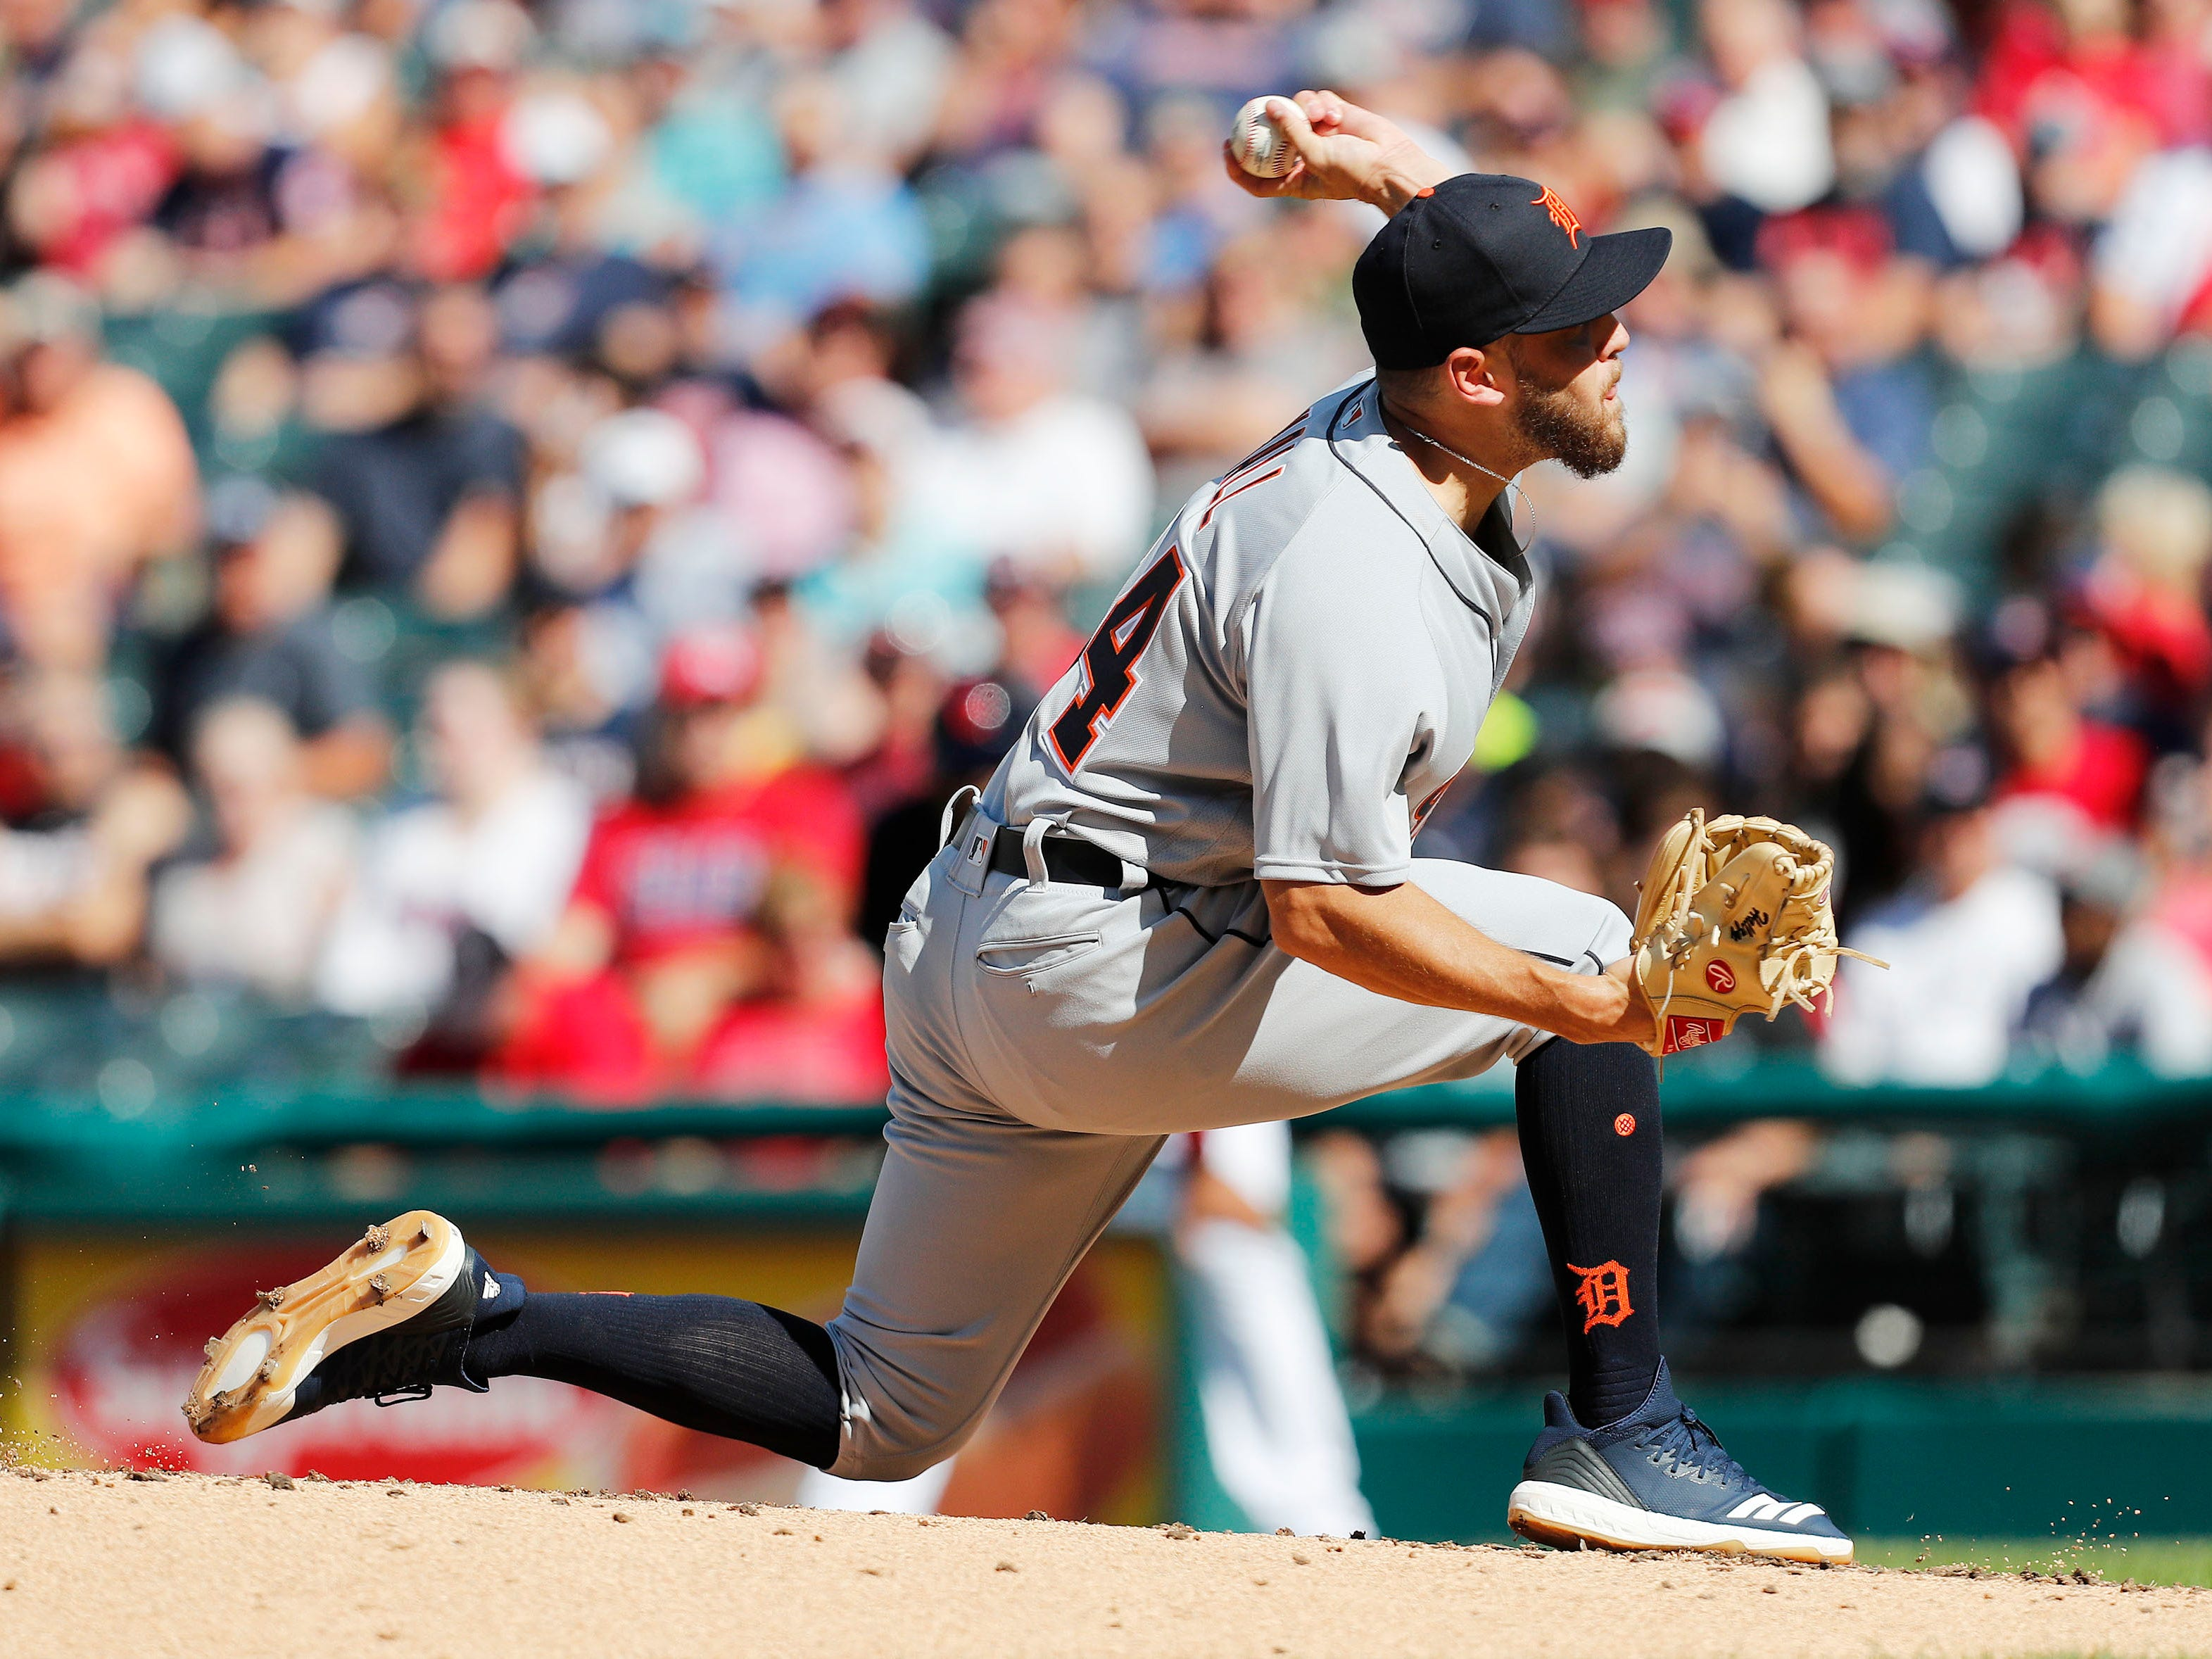 Tigers pitcher Matt Hall pitches against the Cleveland Indians during the first inning on Saturday, Sept.15, 2018, in Cleveland.